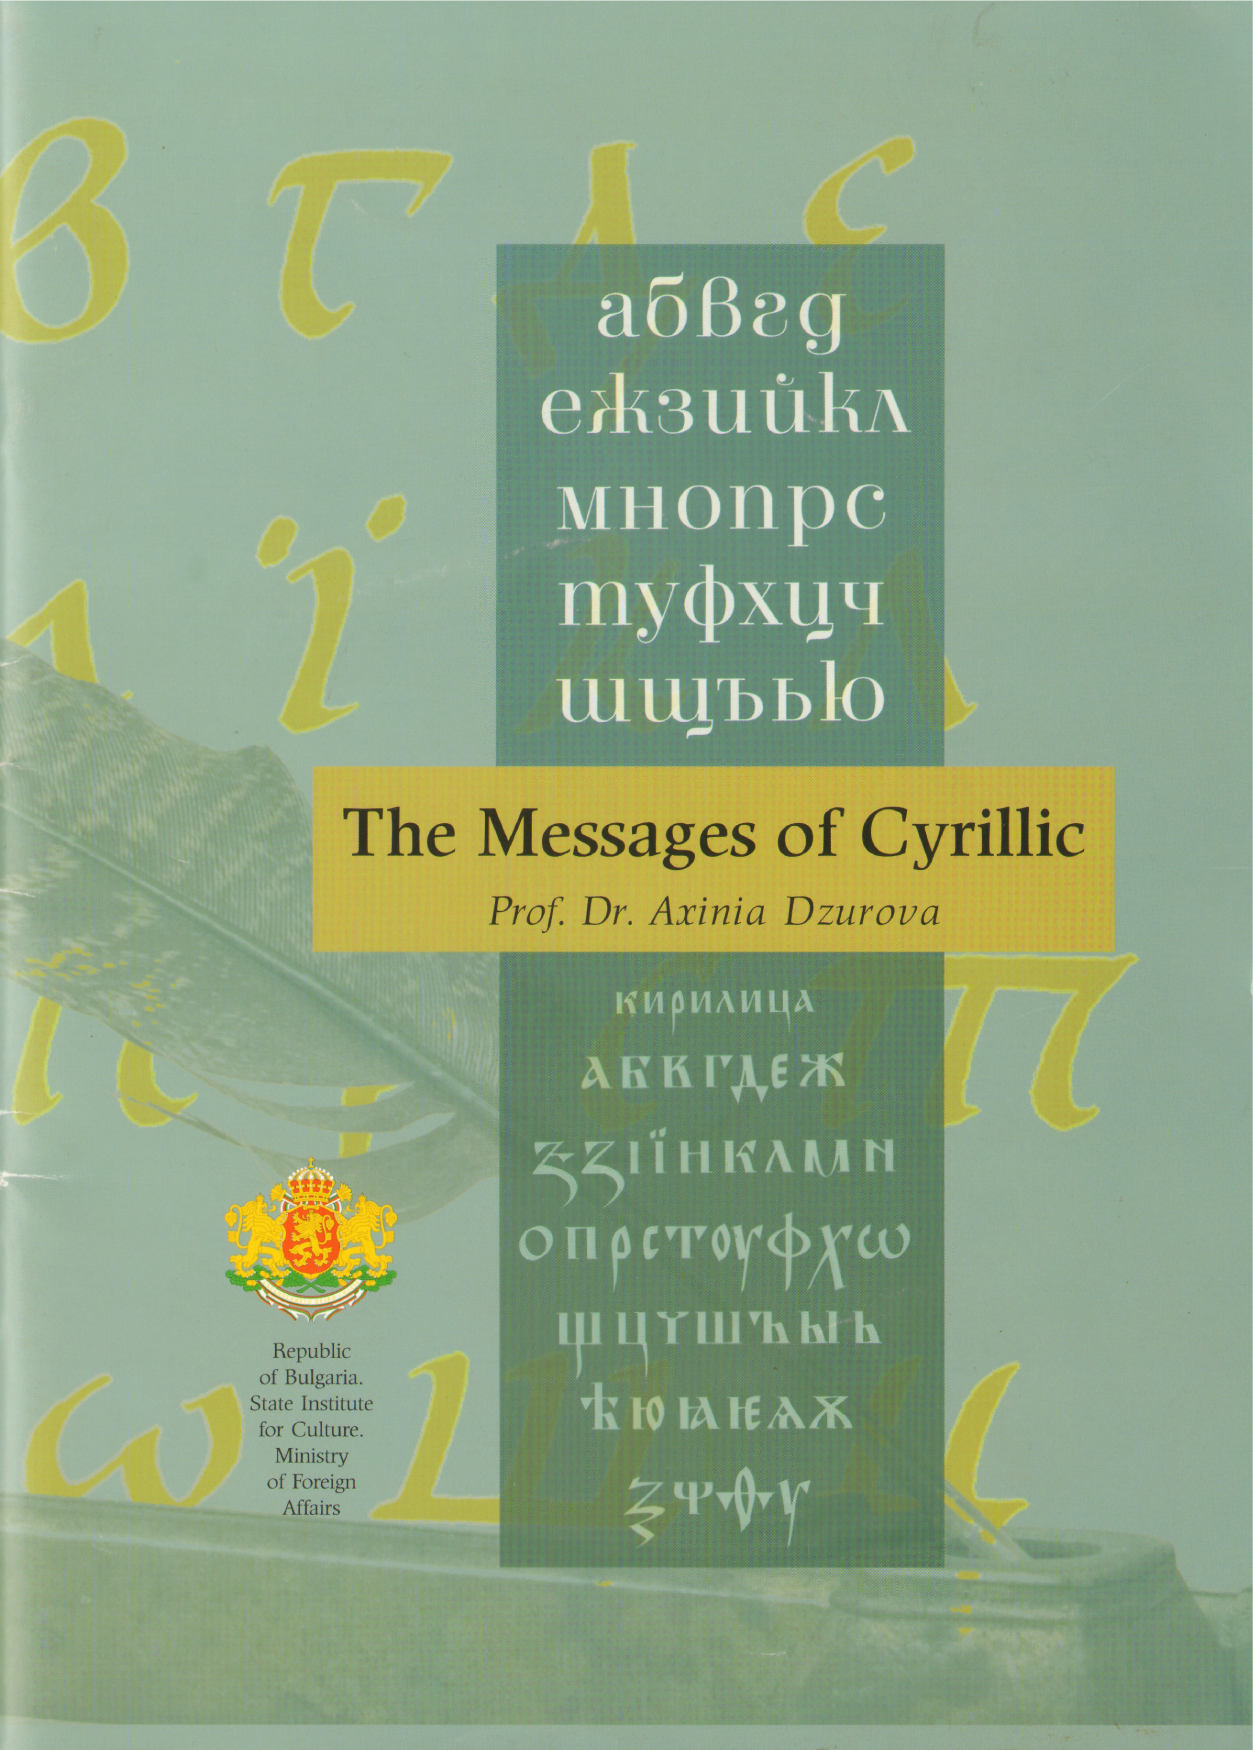 The Messages of Cyrillic